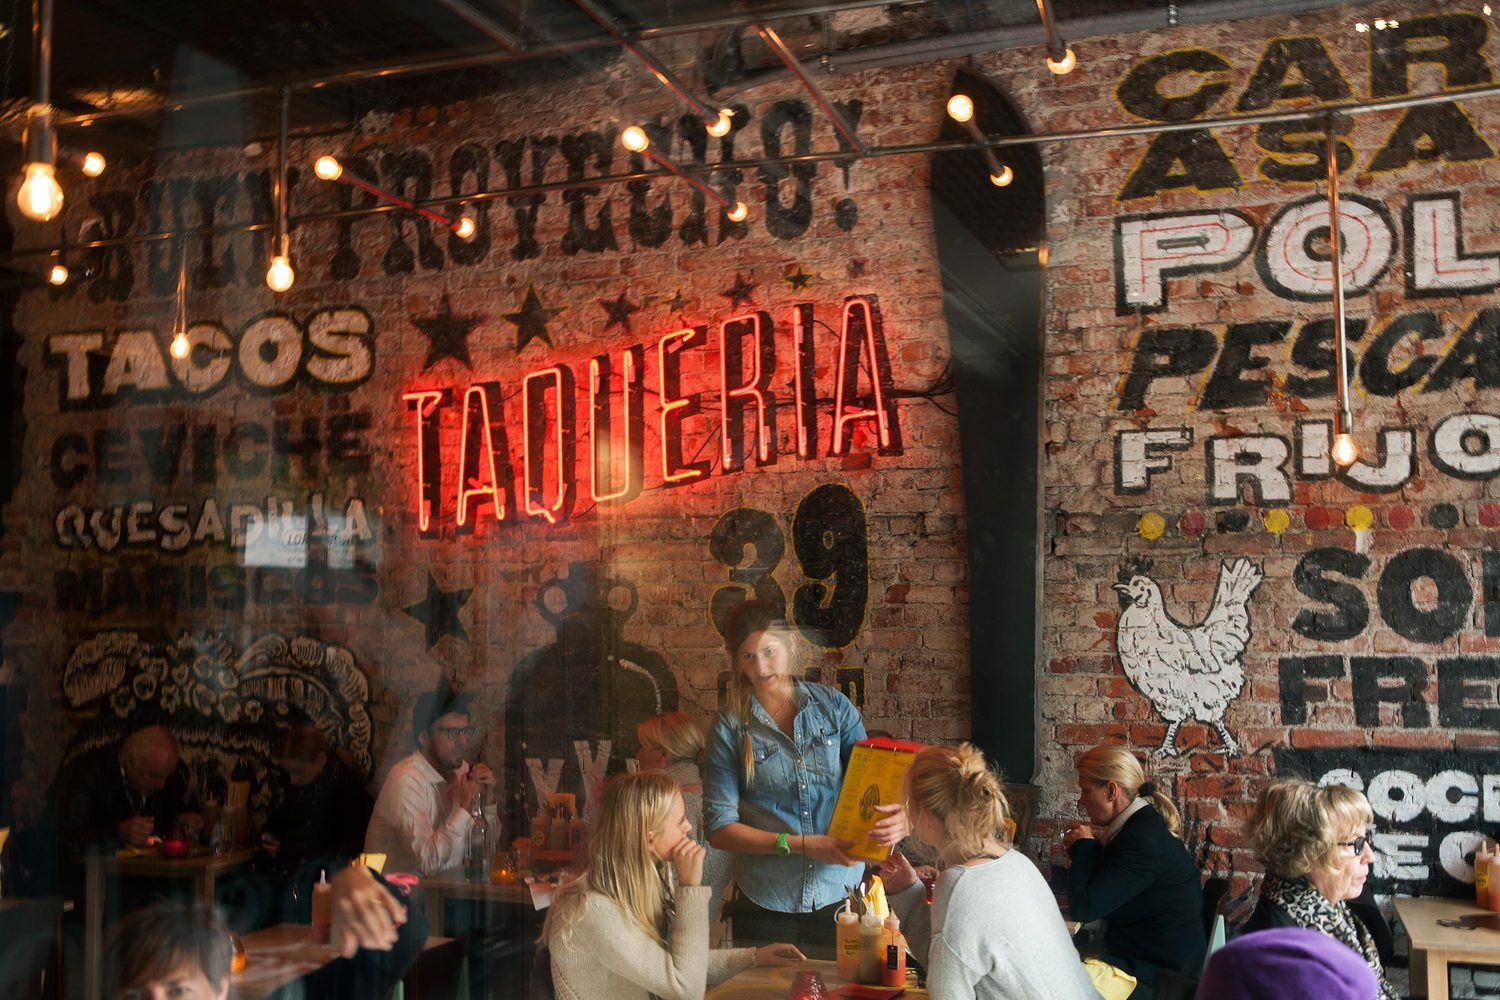 Taqueria The Metric System Mexican Restaurant Design Mexican Restaurant Decor Restaurant Design